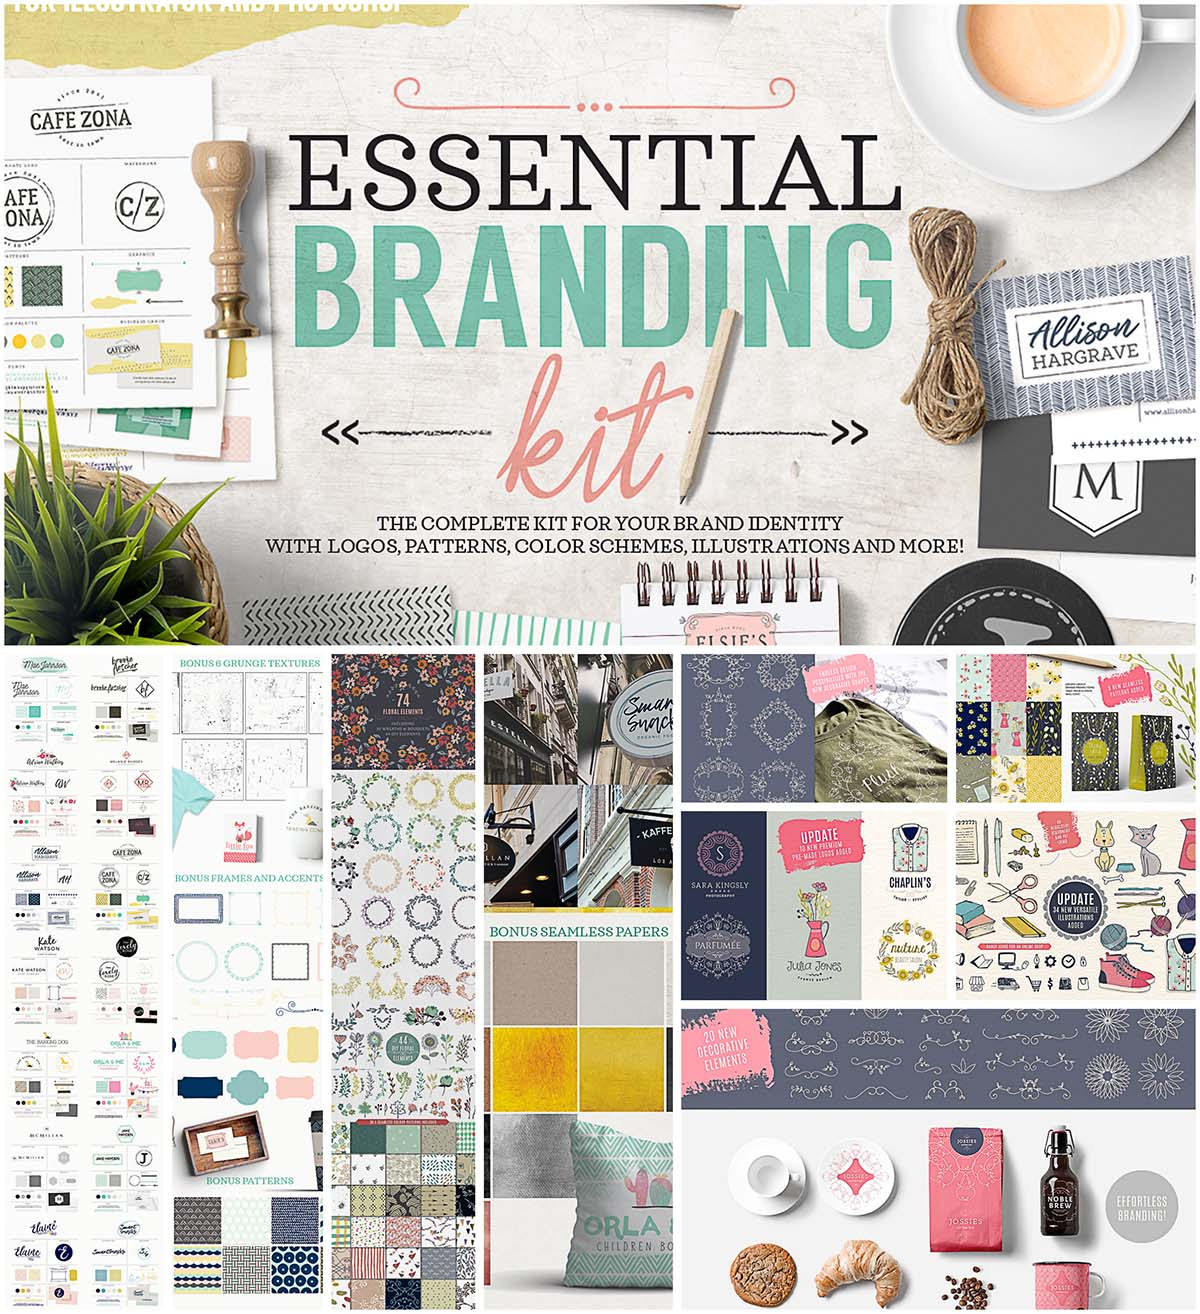 Branding kit essentials